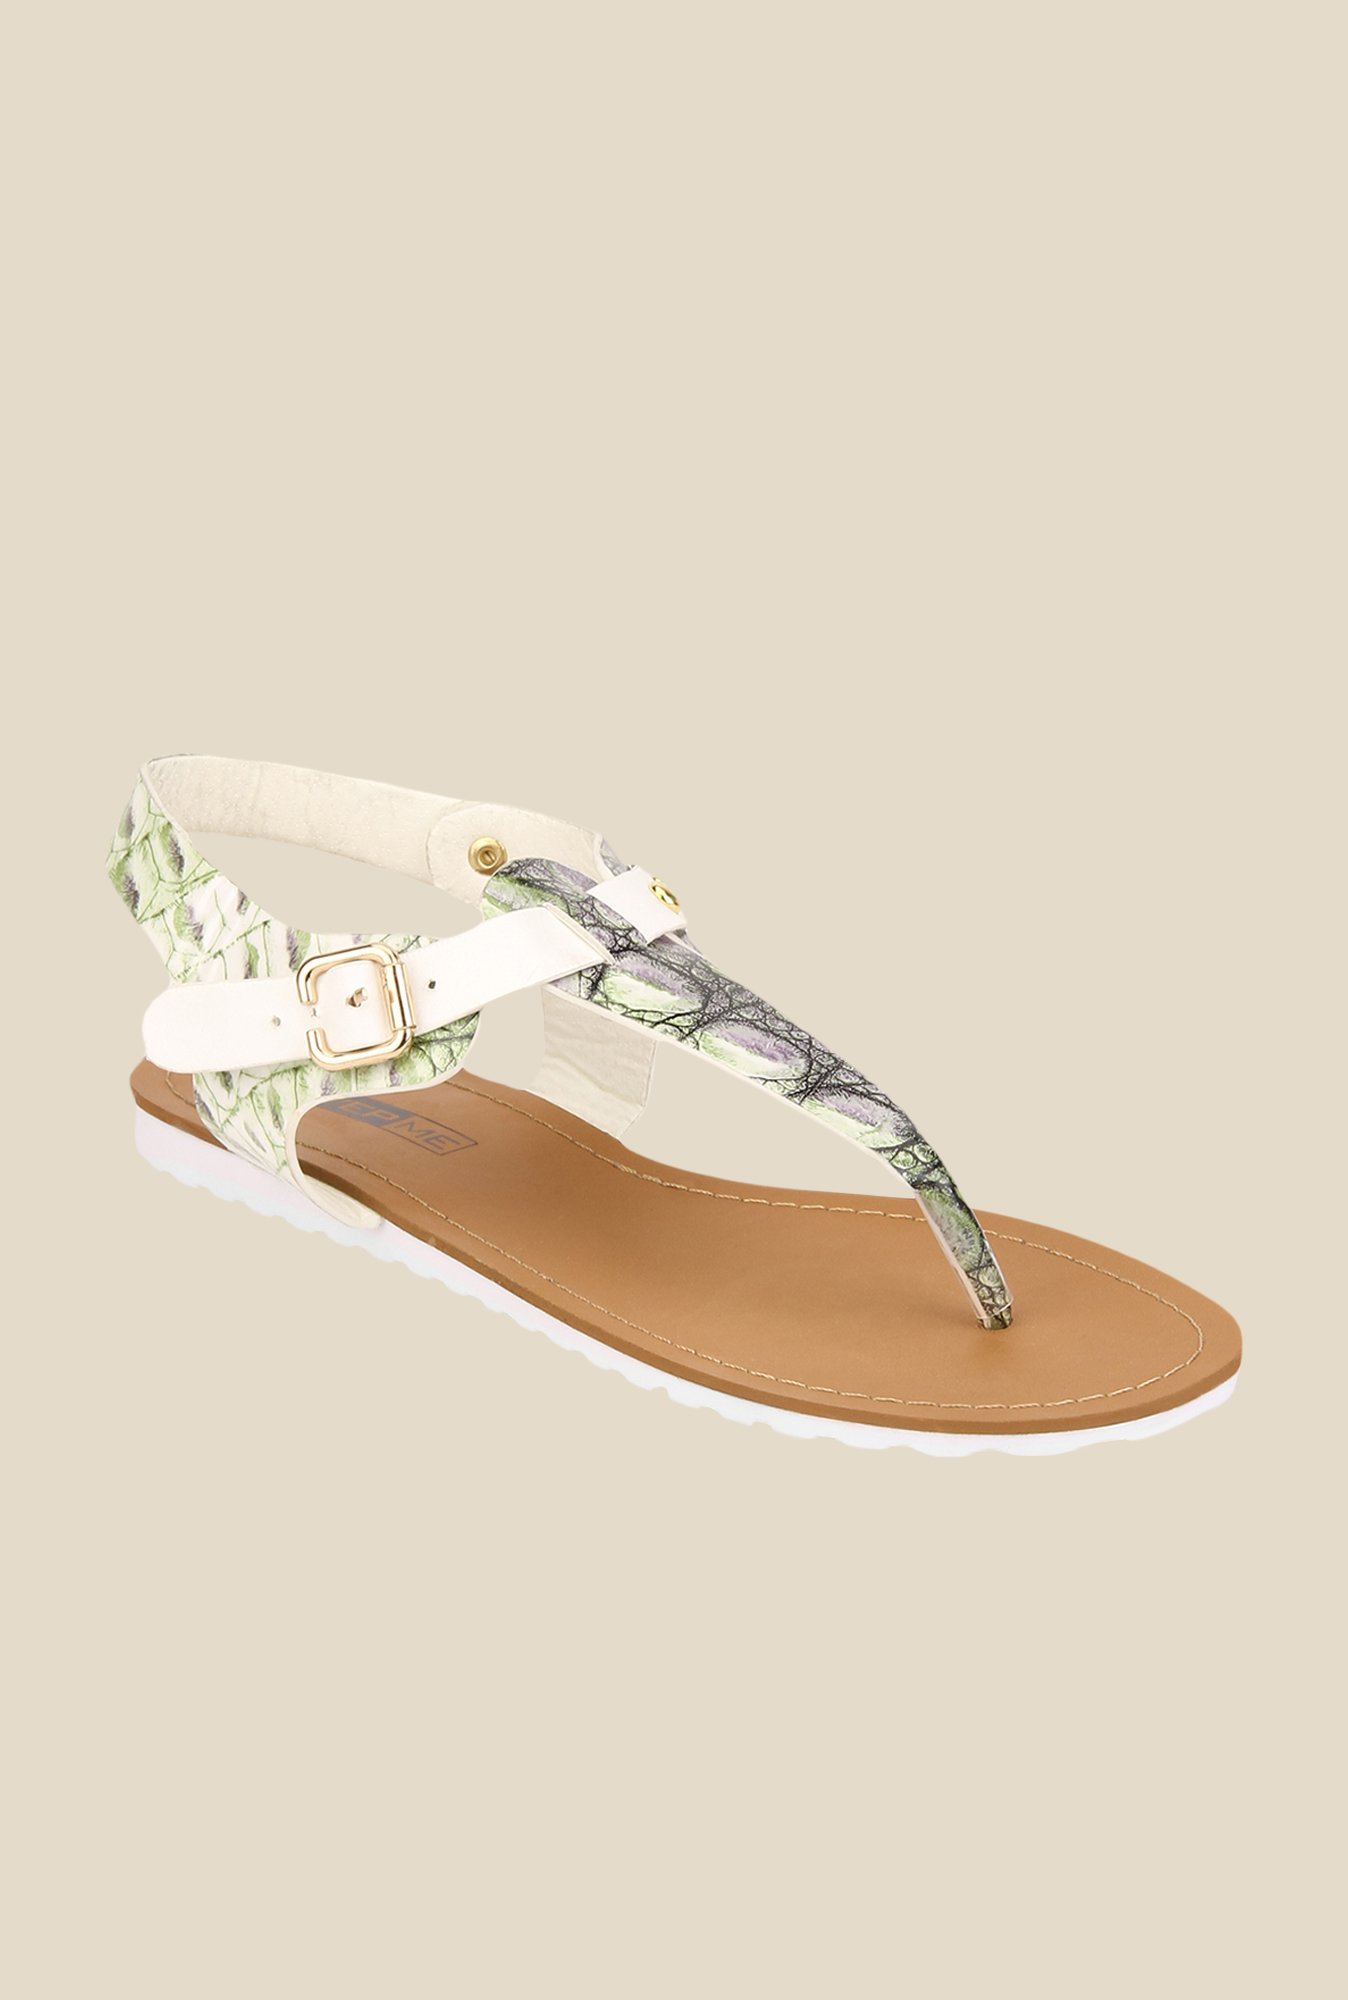 Yepme White & Green T-Strap Sandals